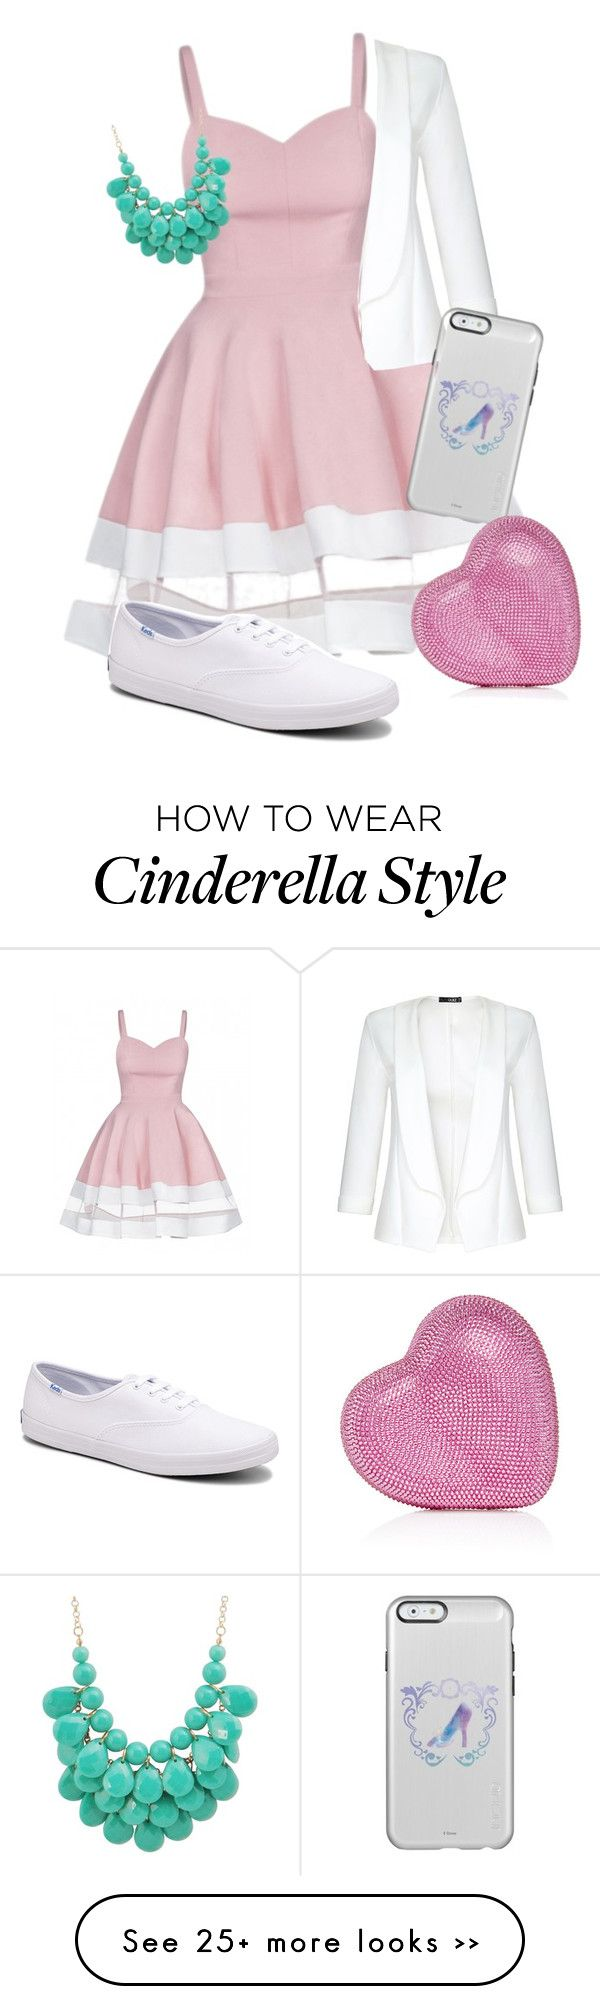 """Ella"" by tinkerbells-laughter on Polyvore featuring Keds, Quiz and Judith Leiber"